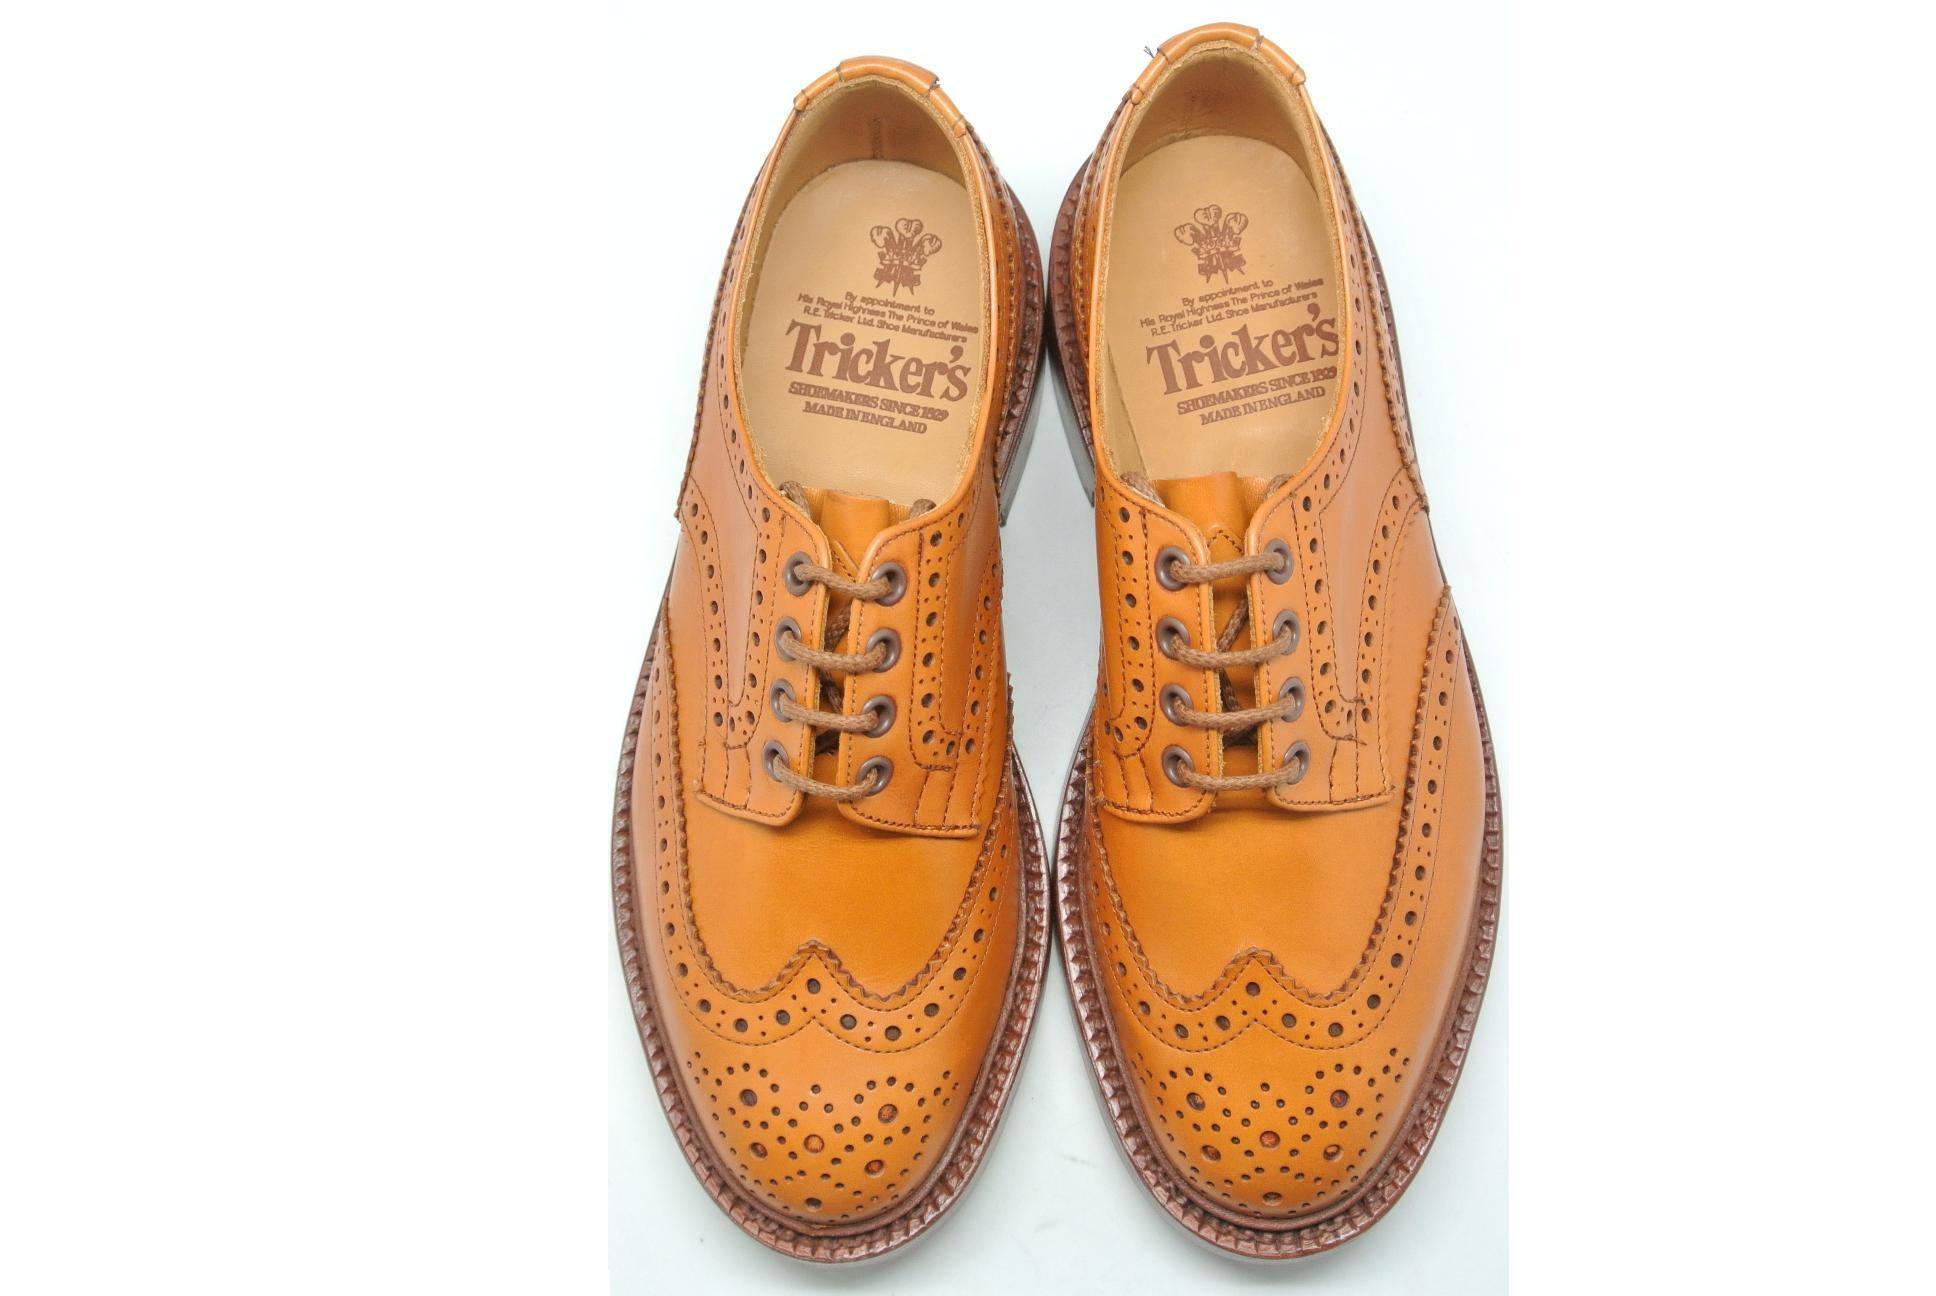 shop john lobb tricker's